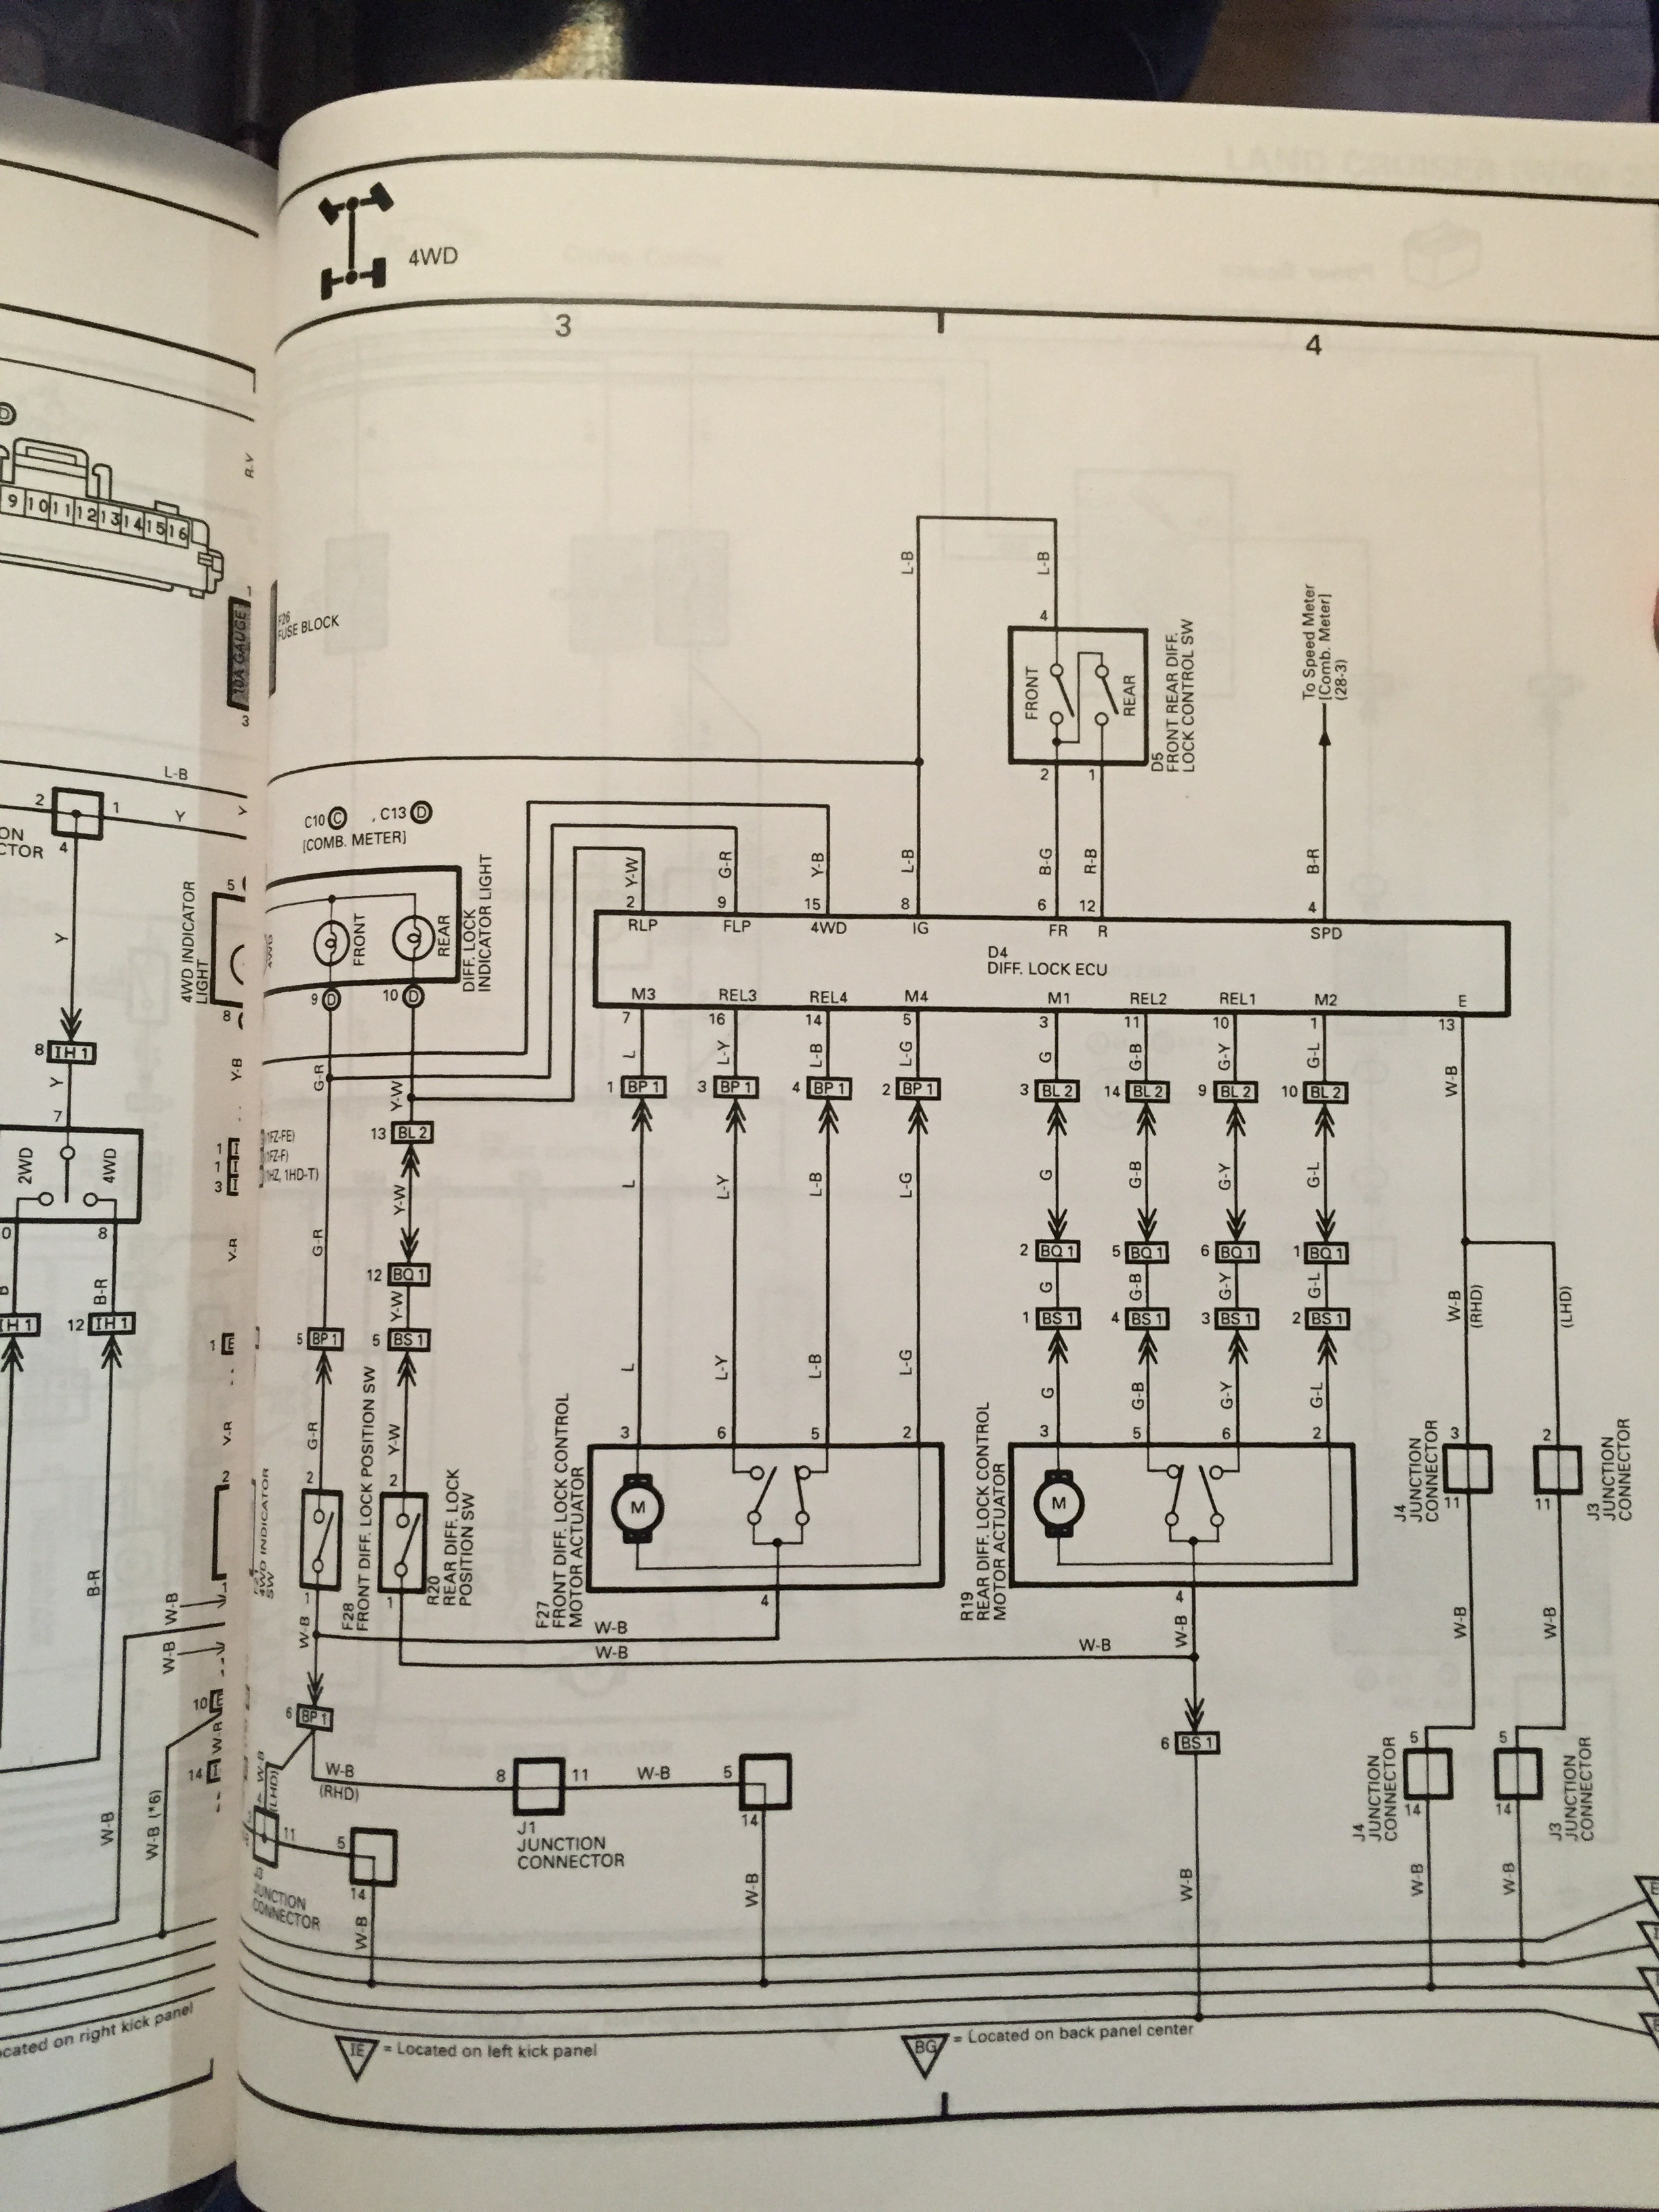 Fitting Factory Lockers Missing Wiring Land Cruiser Club. Toyota. 2015 Toyota Land Cruiser Wiring Diagrams At Scoala.co